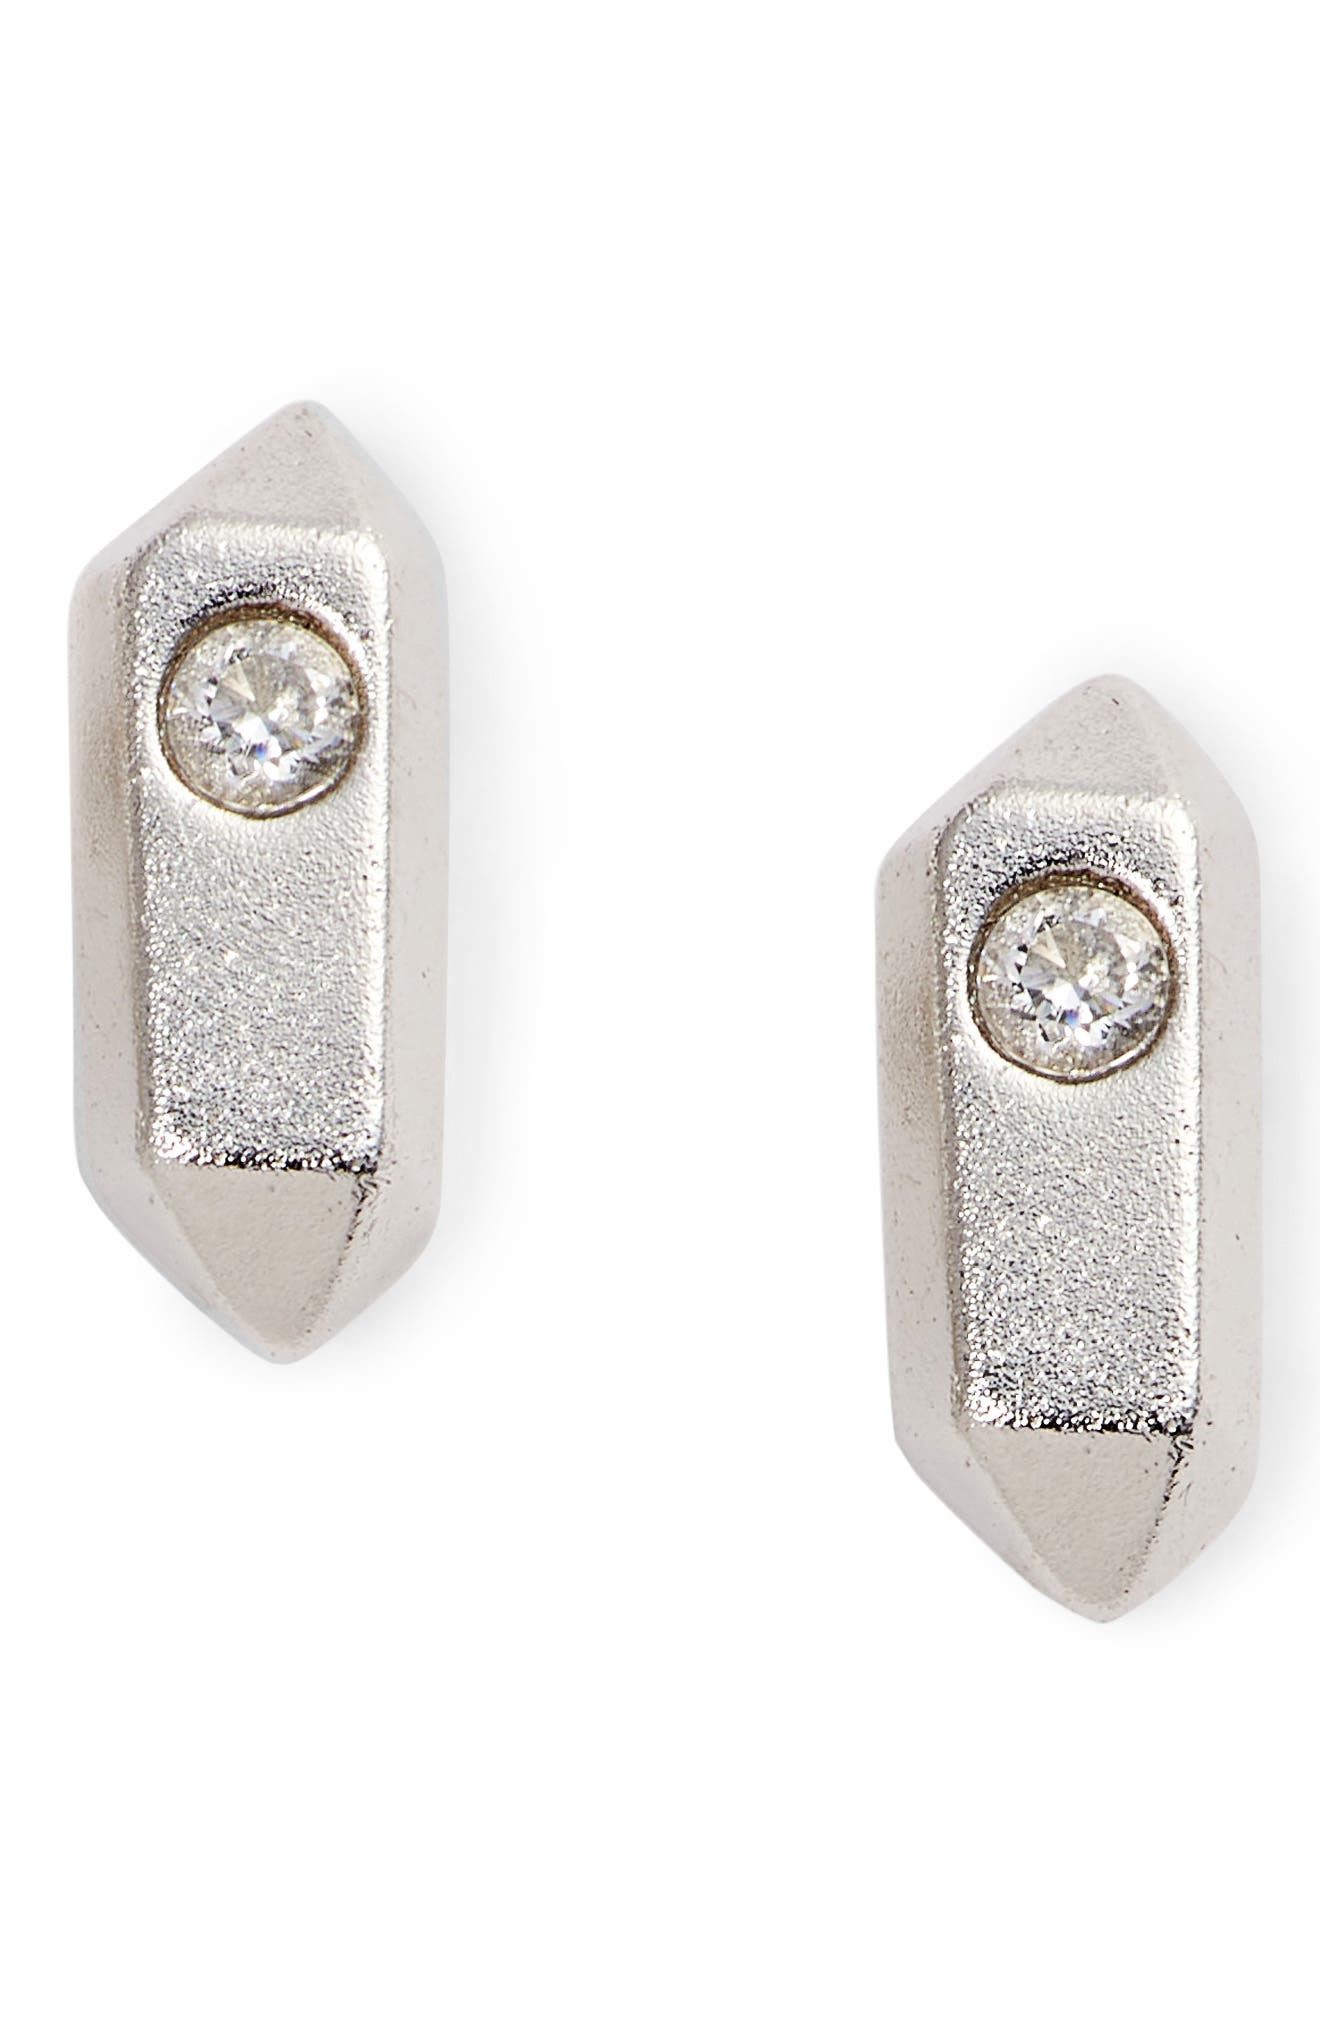 Rooney Stud Earrings,                             Main thumbnail 1, color,                             040